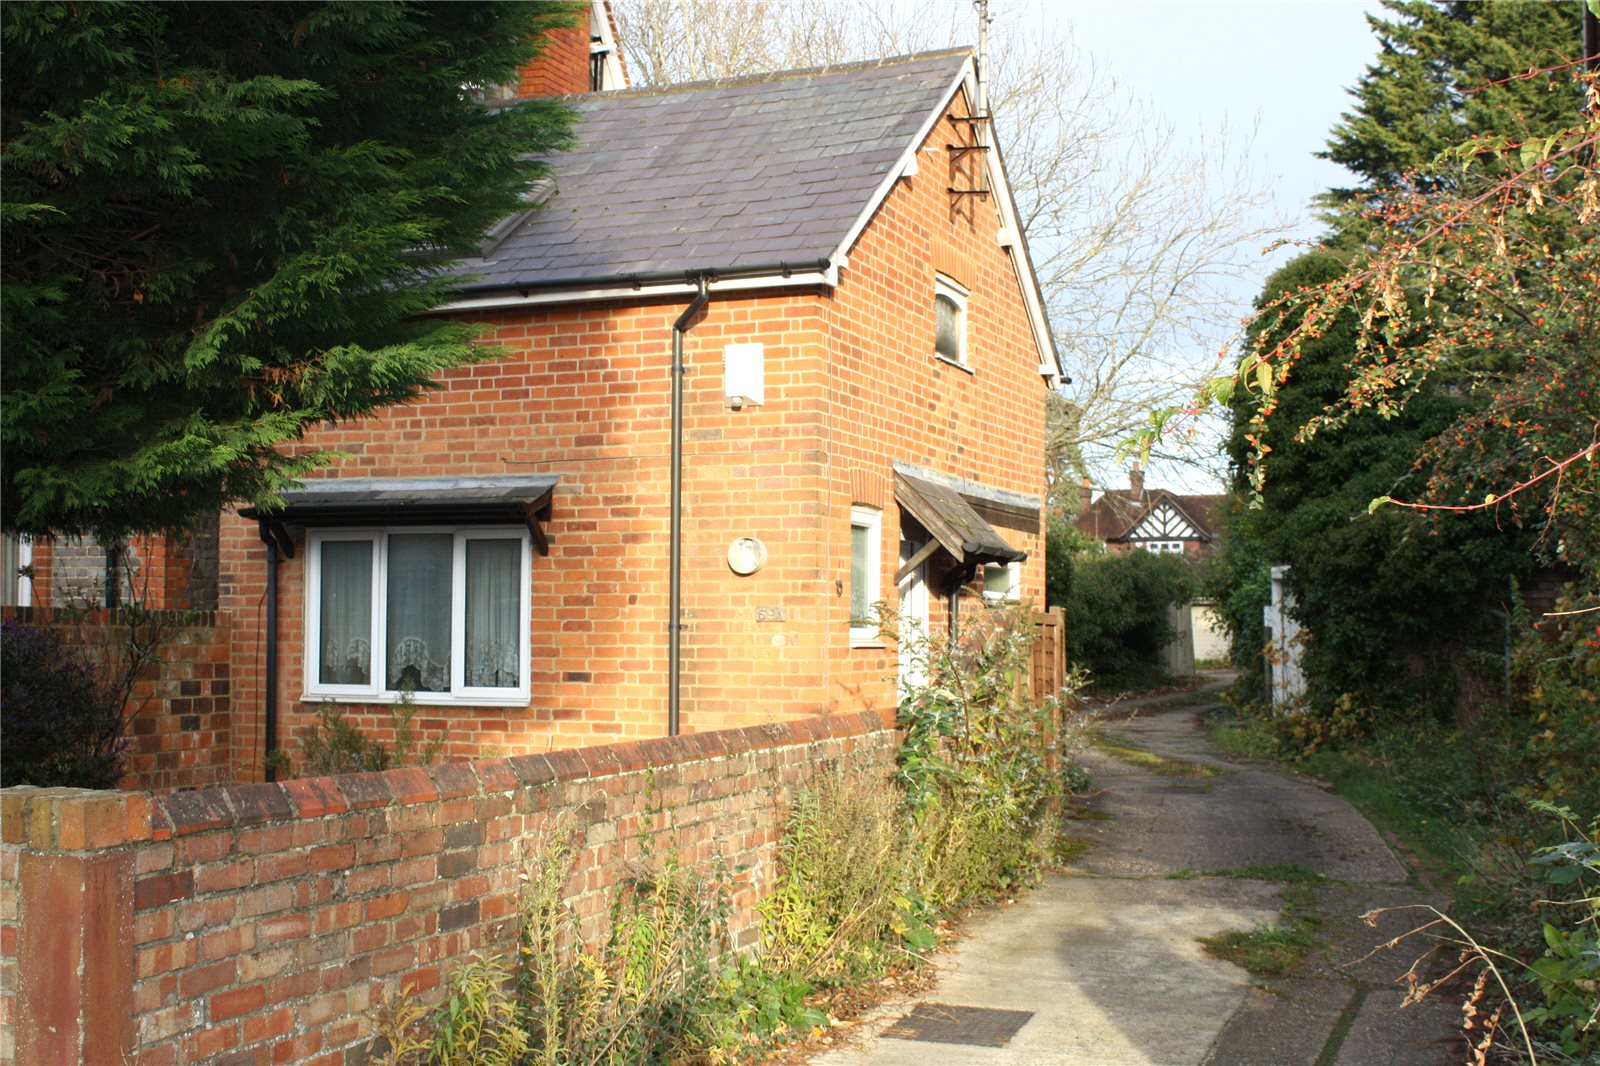 Parkers Earley 1 Bedroom House For Sale In Hamilton Road